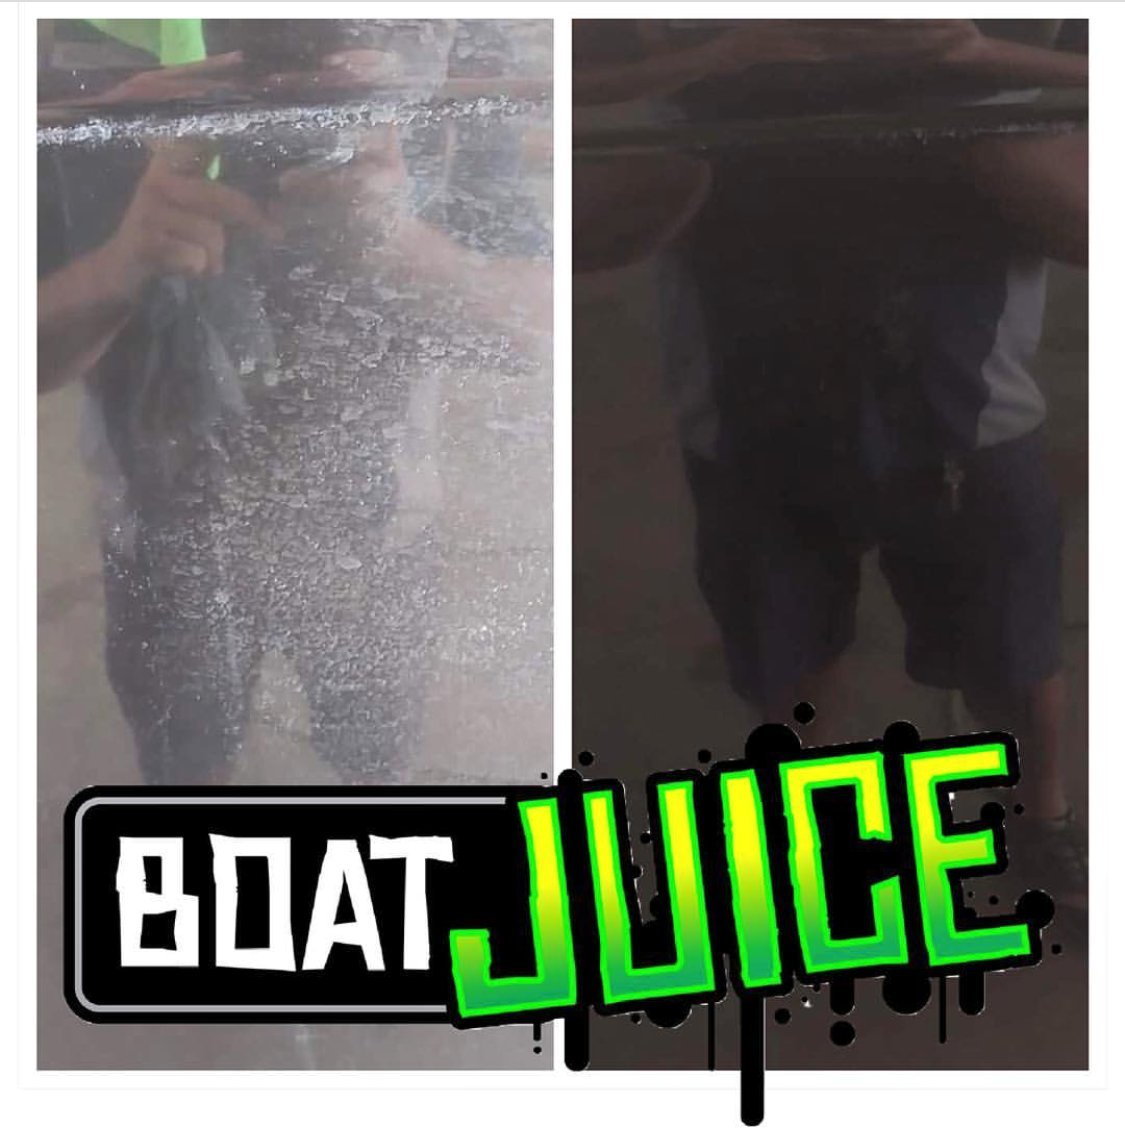 Boat Juice Exterior Boat Cleaner - Water Spot Remover - Polymer Wax Protectant - Gloss Enhancer - Pina Colada Scent - 18oz Sprayer Bottle by Boat Juice (Image #3)